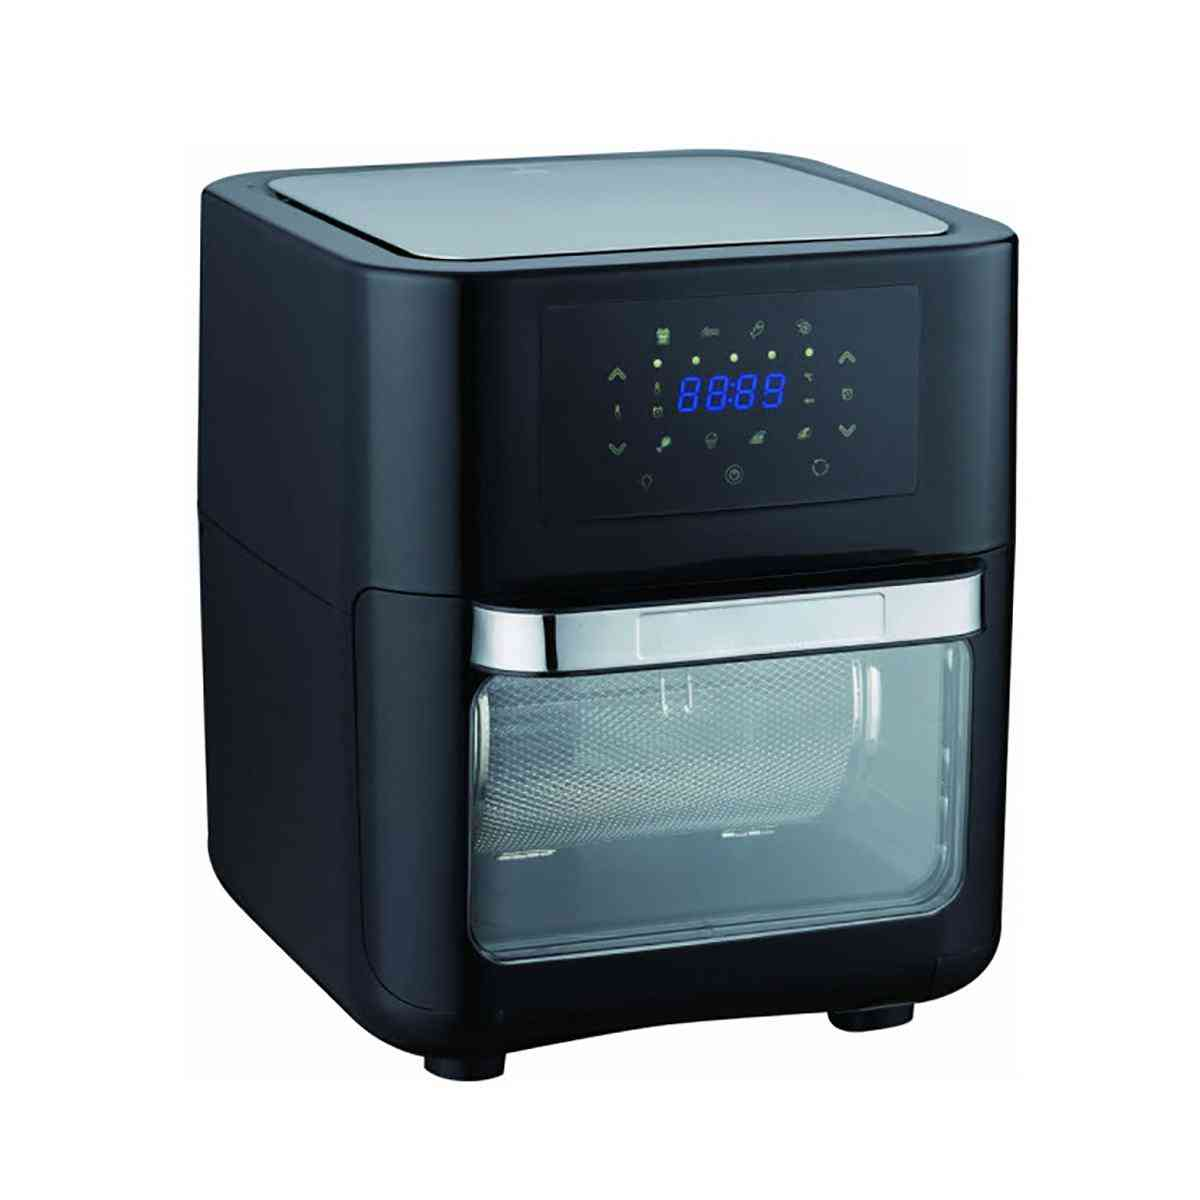 Smart Oil Free Air Fryer Oven, Healthy Food, Touch Lcd Electric Deep